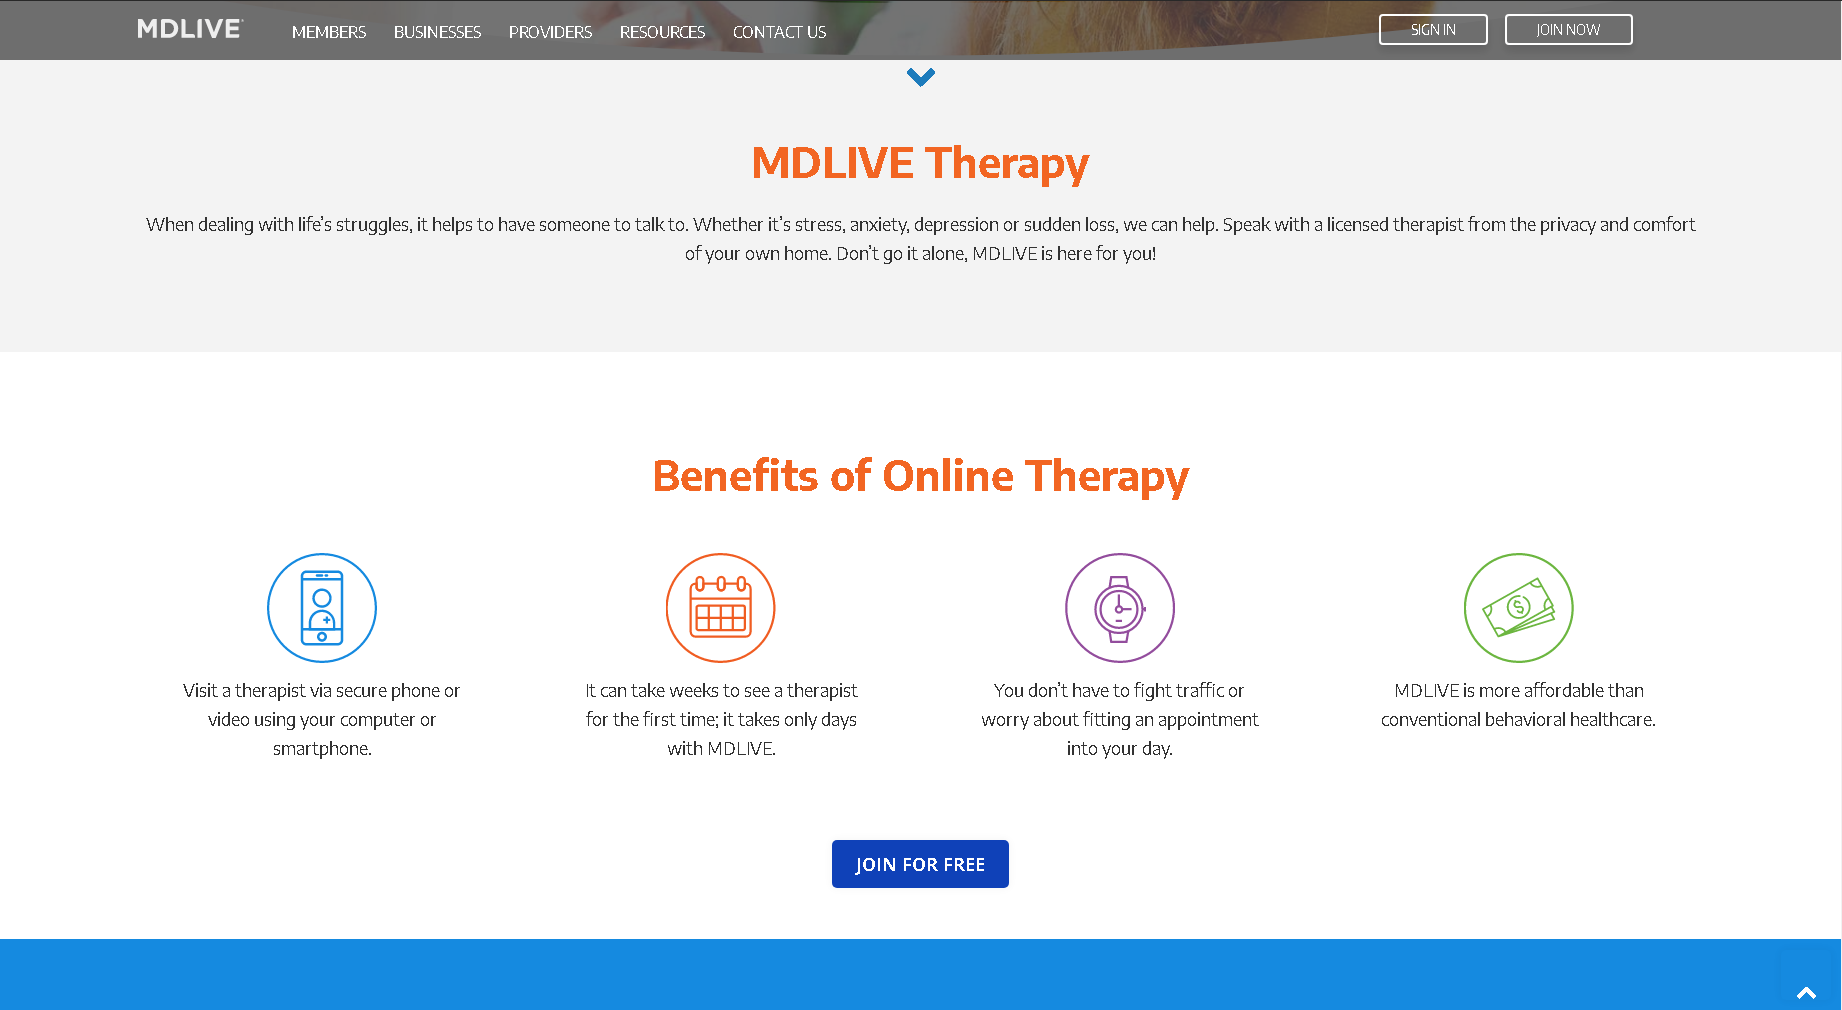 mdlive%20online%20therapy-5e908650c36ce.PNG